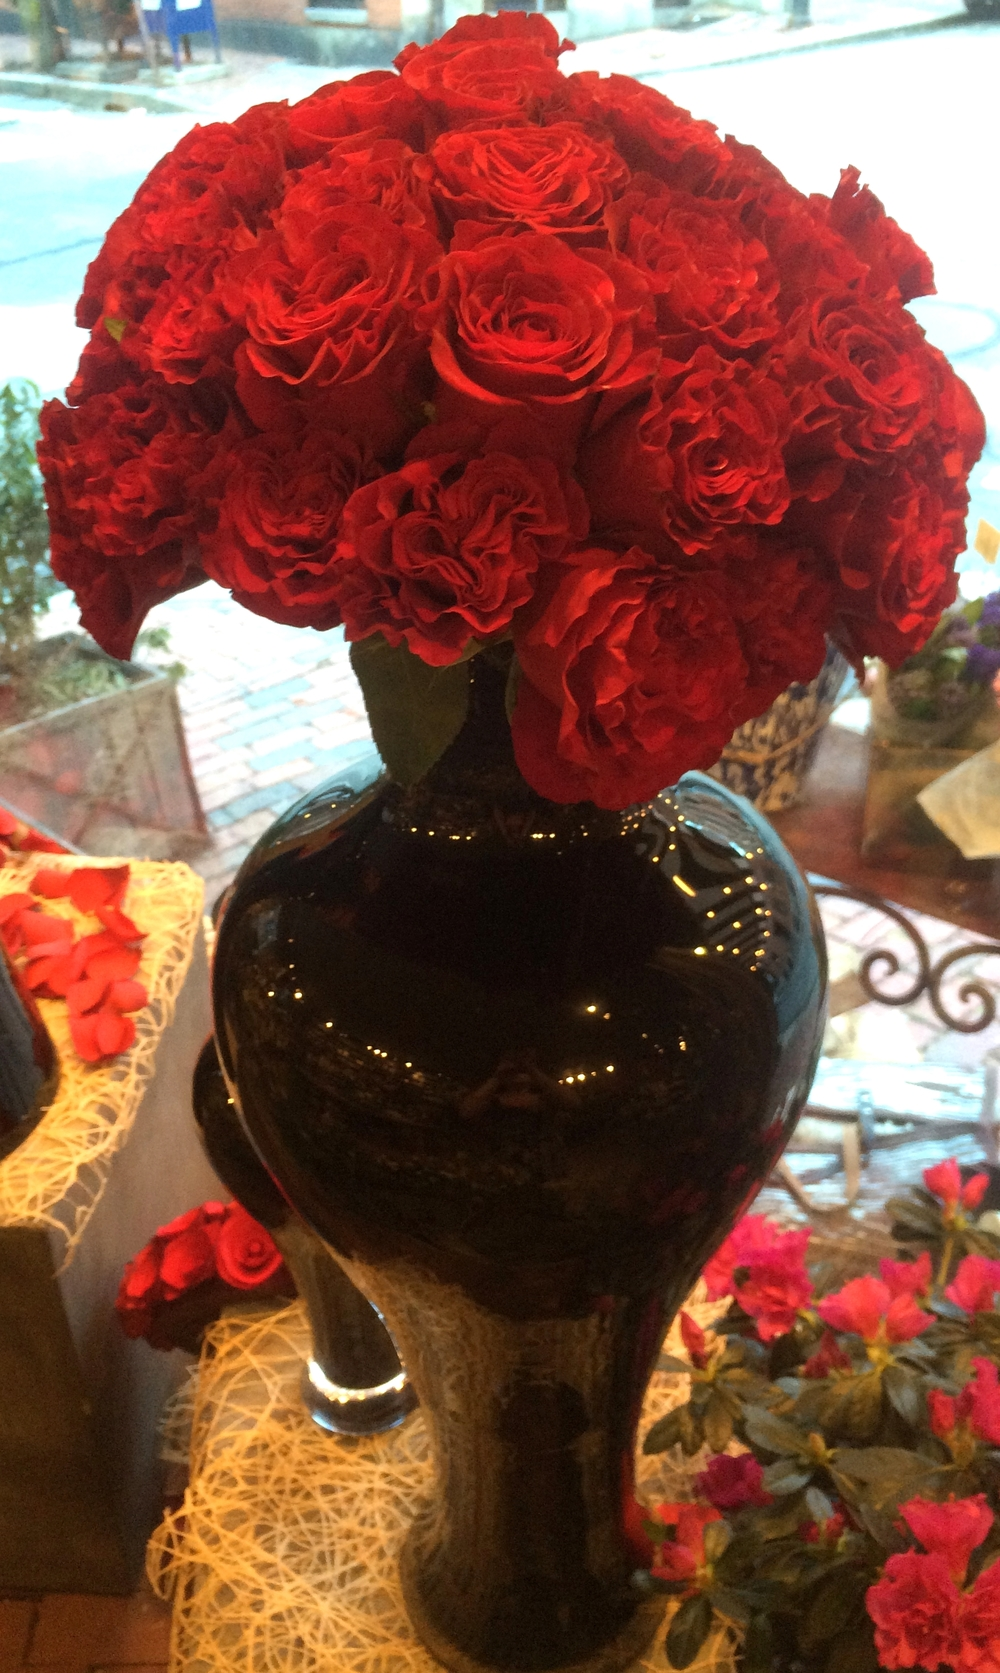 """Here we've placed it in a sleek and modern black glass vase. This style of arranging is known as Pav é-floral or """"head to head""""."""